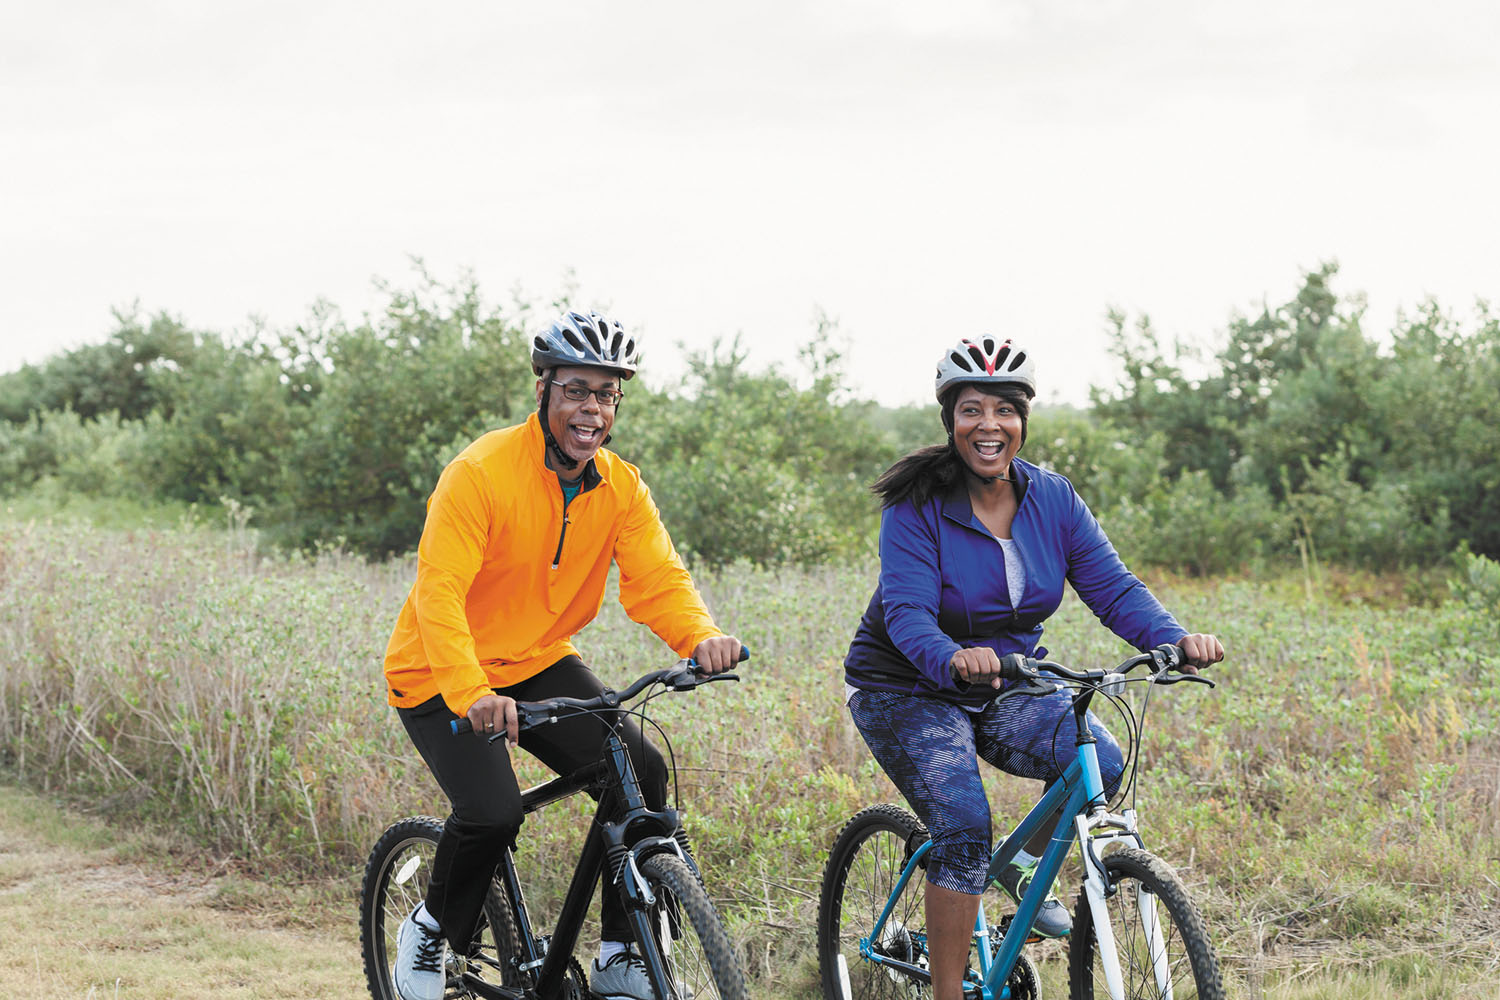 Pedal your way to better heart health - Harvard Health